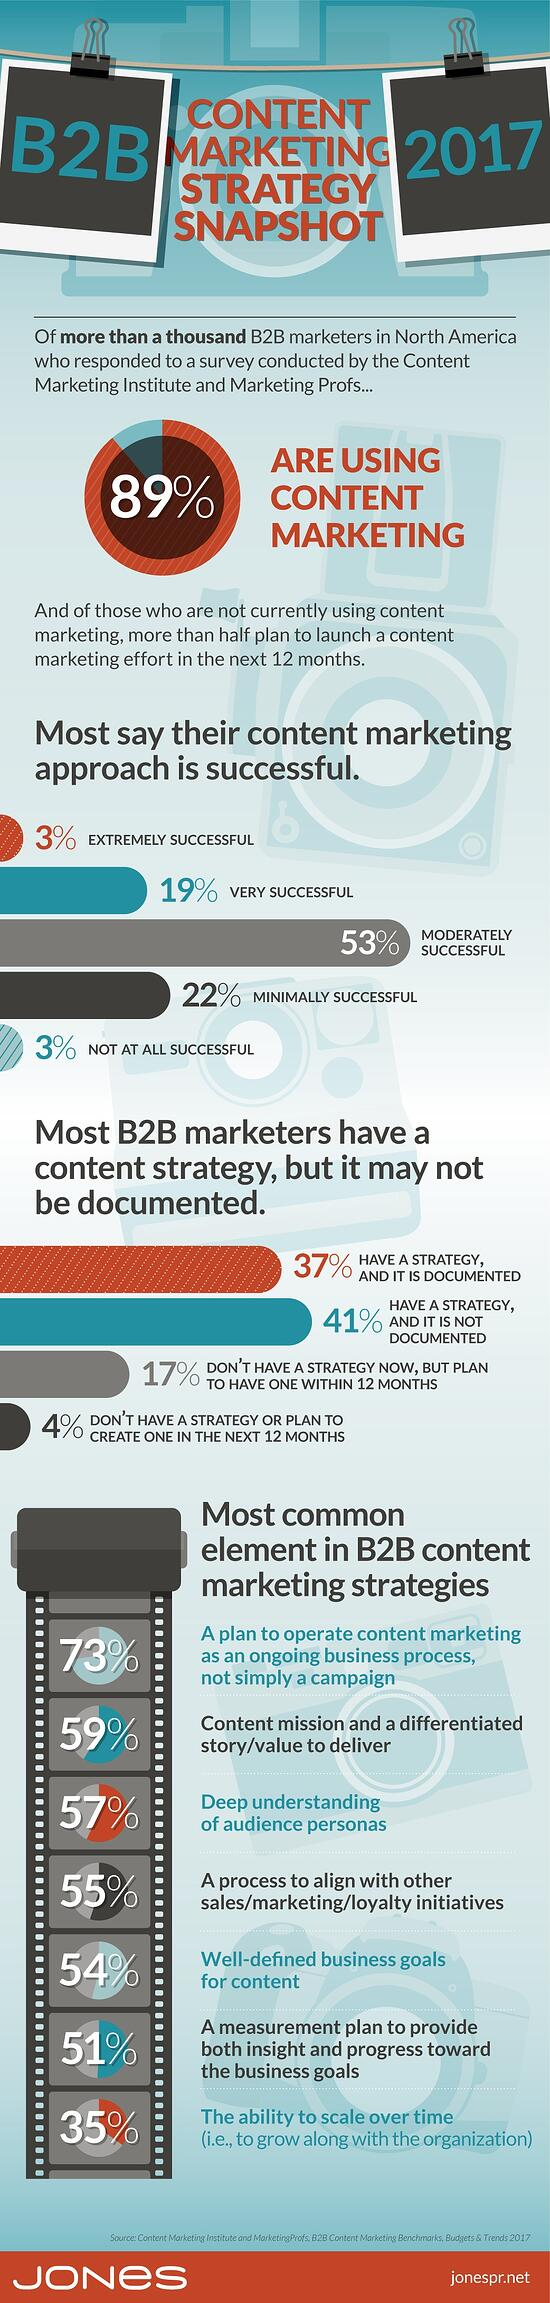 B2B Content Marketing in 2017: Strategy Snapshot (Infographic